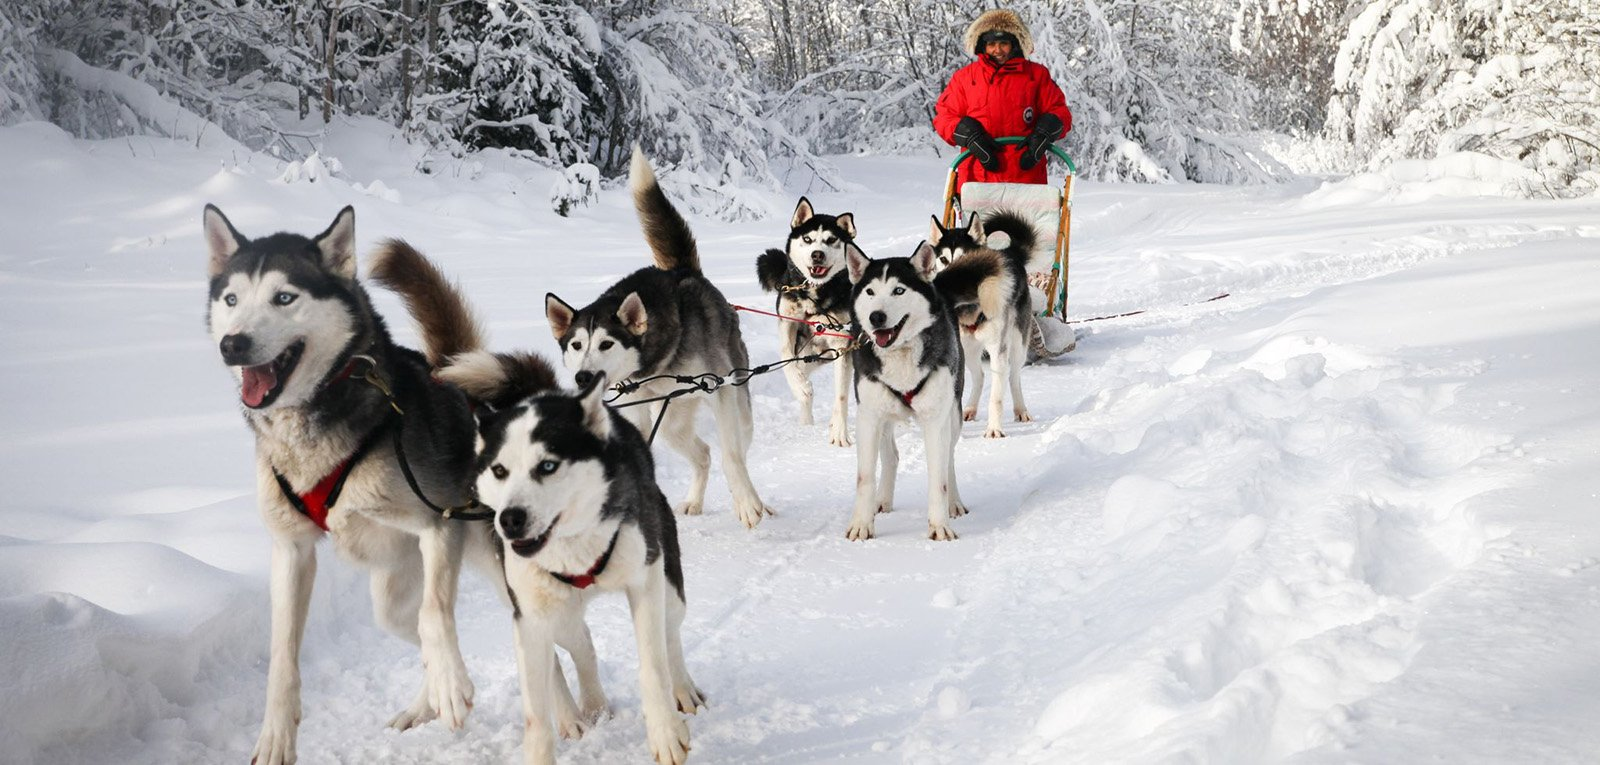 outdoor activities dog sled ottawa outaouais. Black Bedroom Furniture Sets. Home Design Ideas